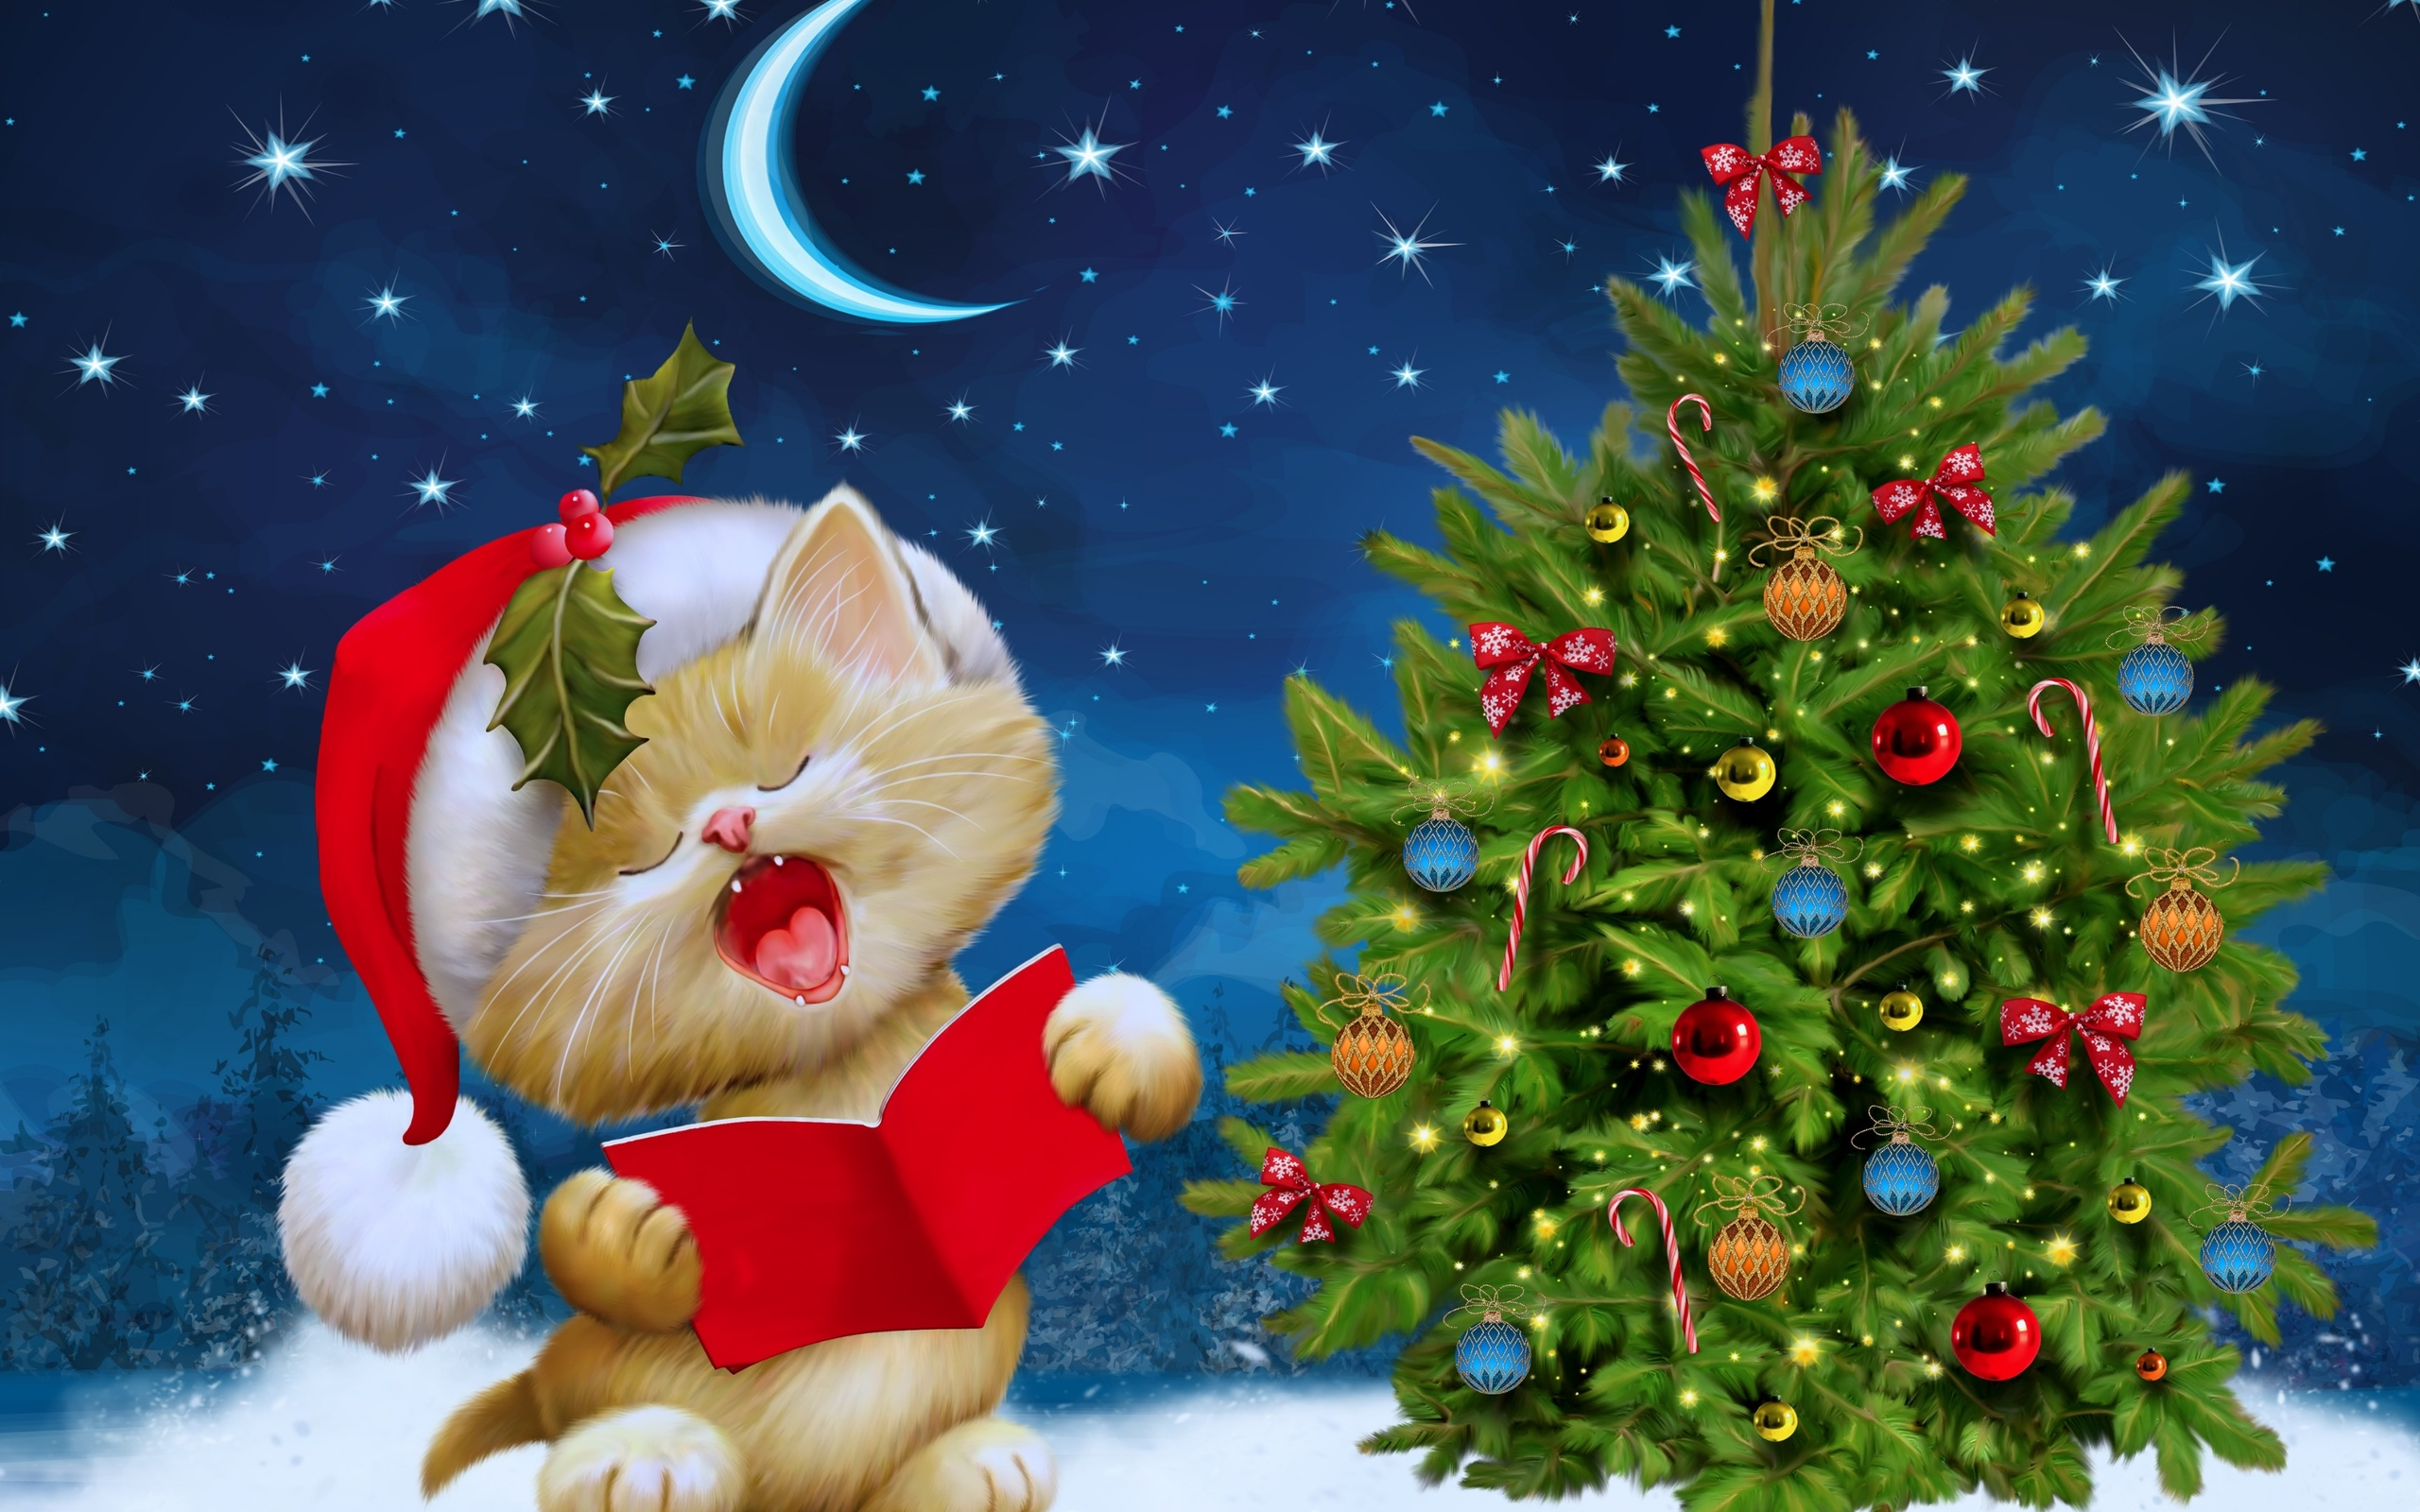 Merry Christmas kitten 4K Ultra HD wallpaper 4k WallpaperNet 2560x1600